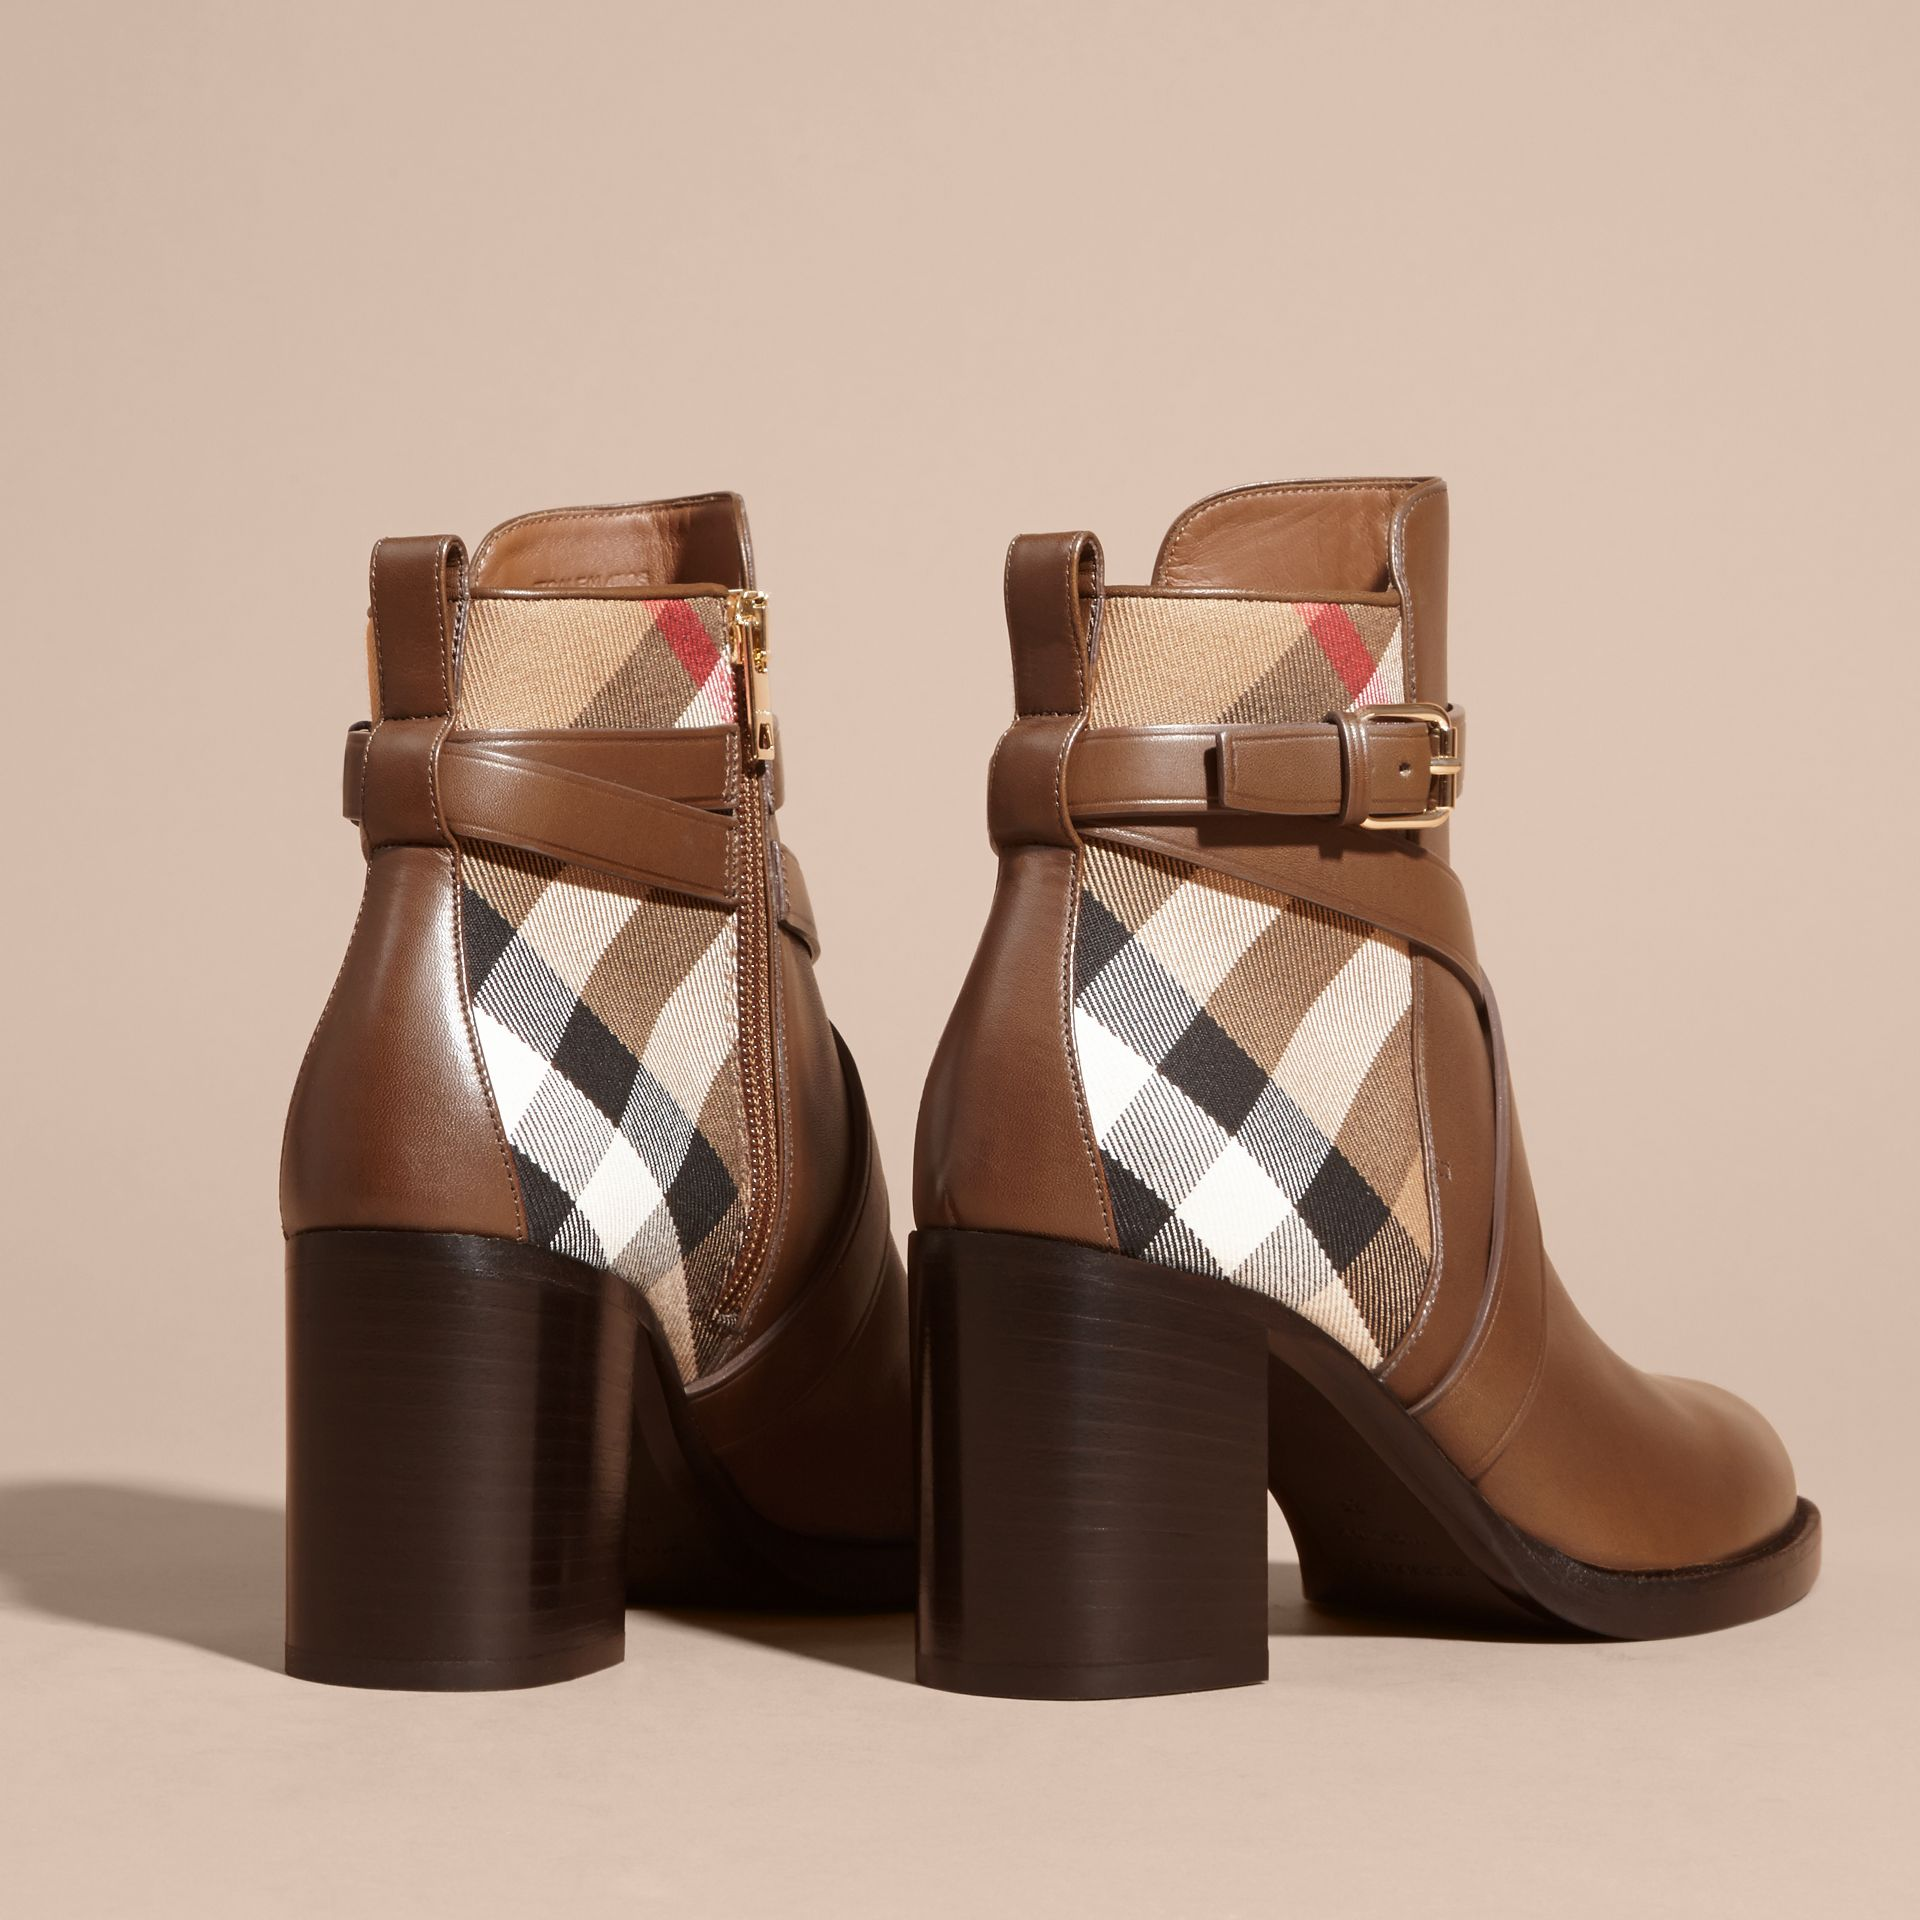 House Check and Leather Ankle Boots Bright Camel - gallery image 4